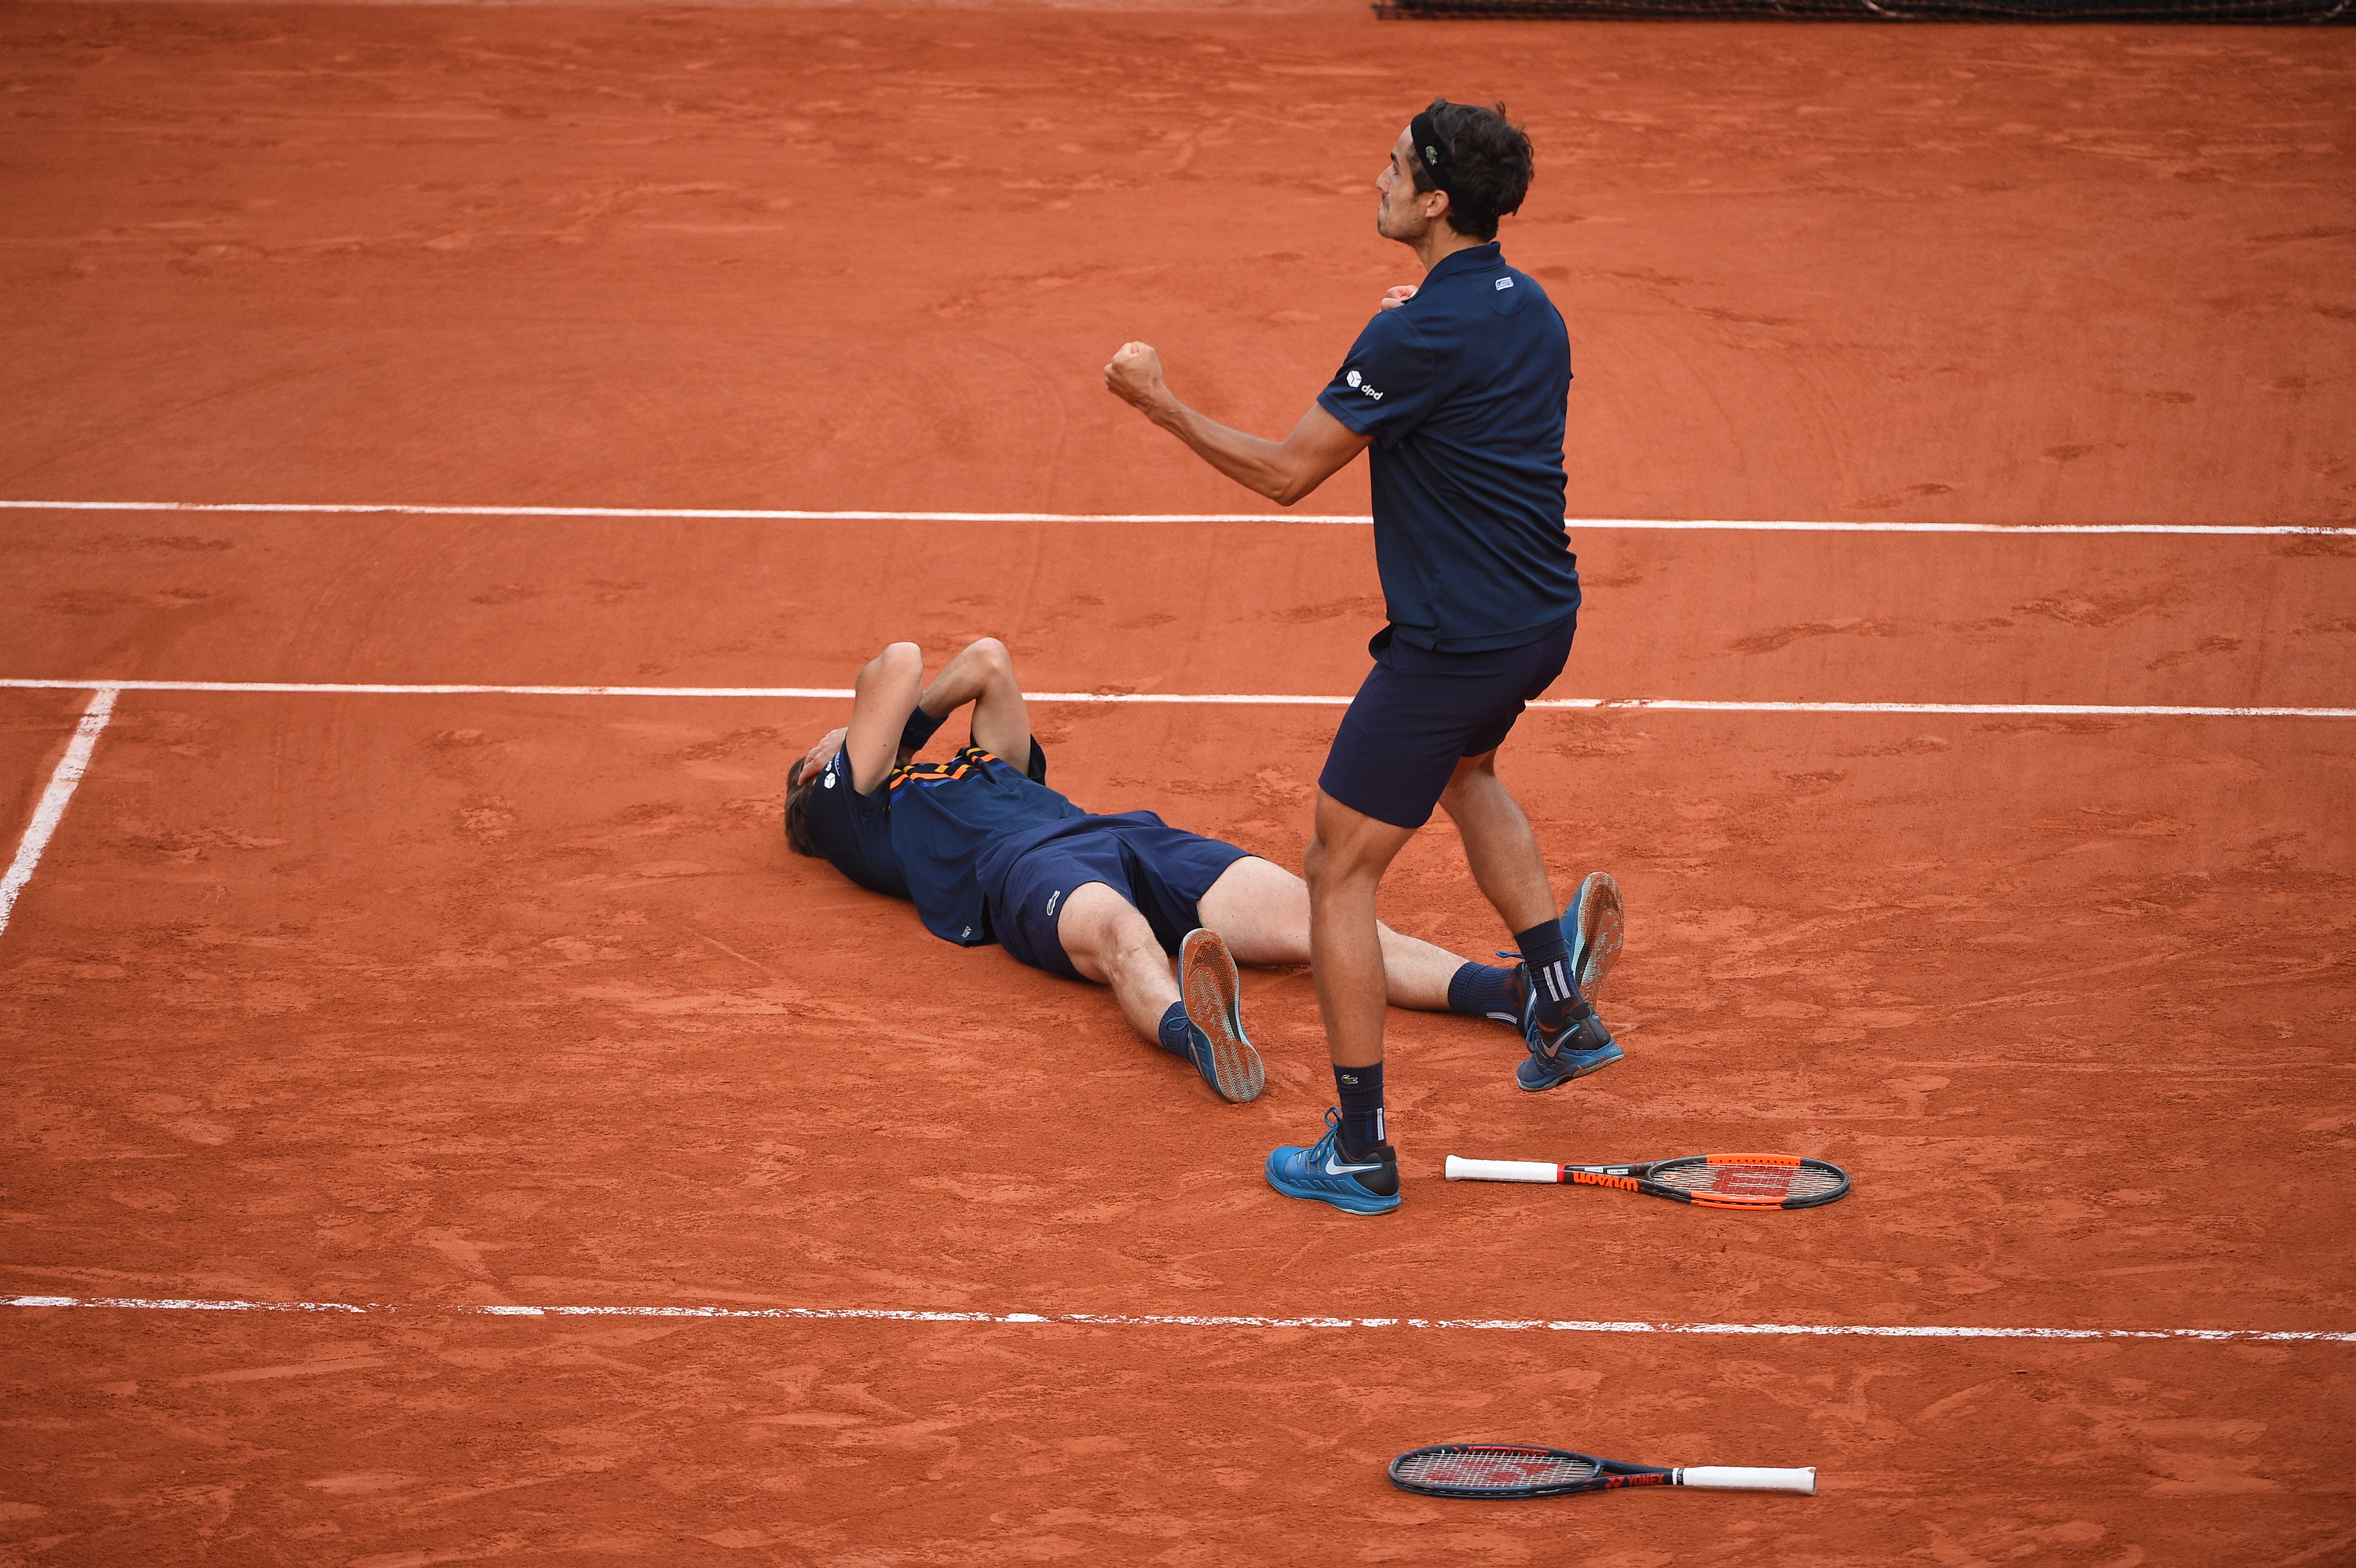 Nicolas Mahut and Pierre-Hugues Herbert happy with the win at Roland-Garros 2018